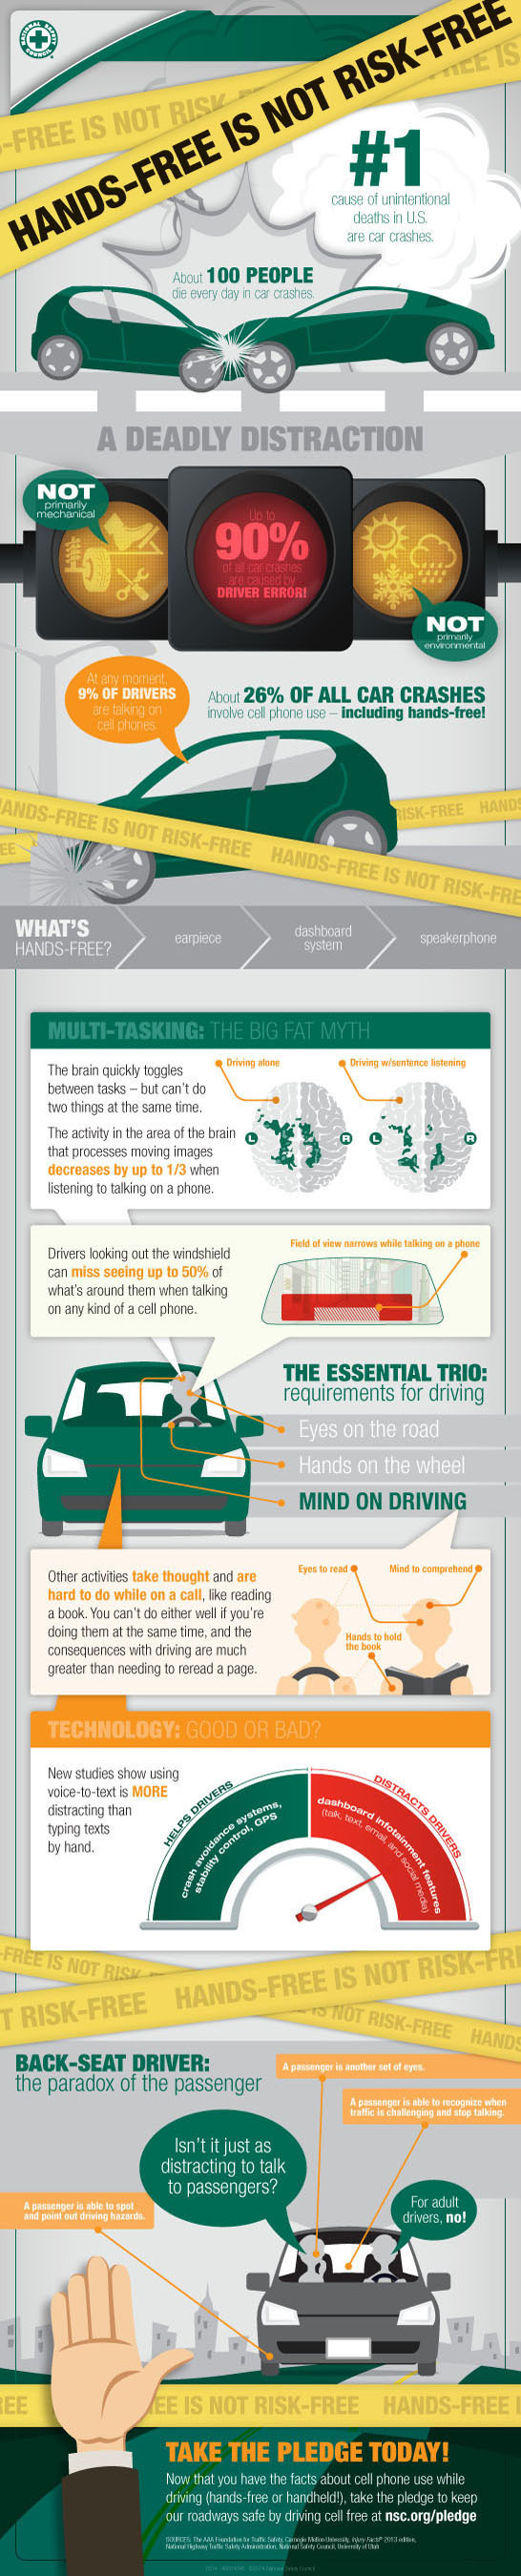 There is no safe way to use a cell phone while driving. More than 30 studies show hands-free devices are not ...